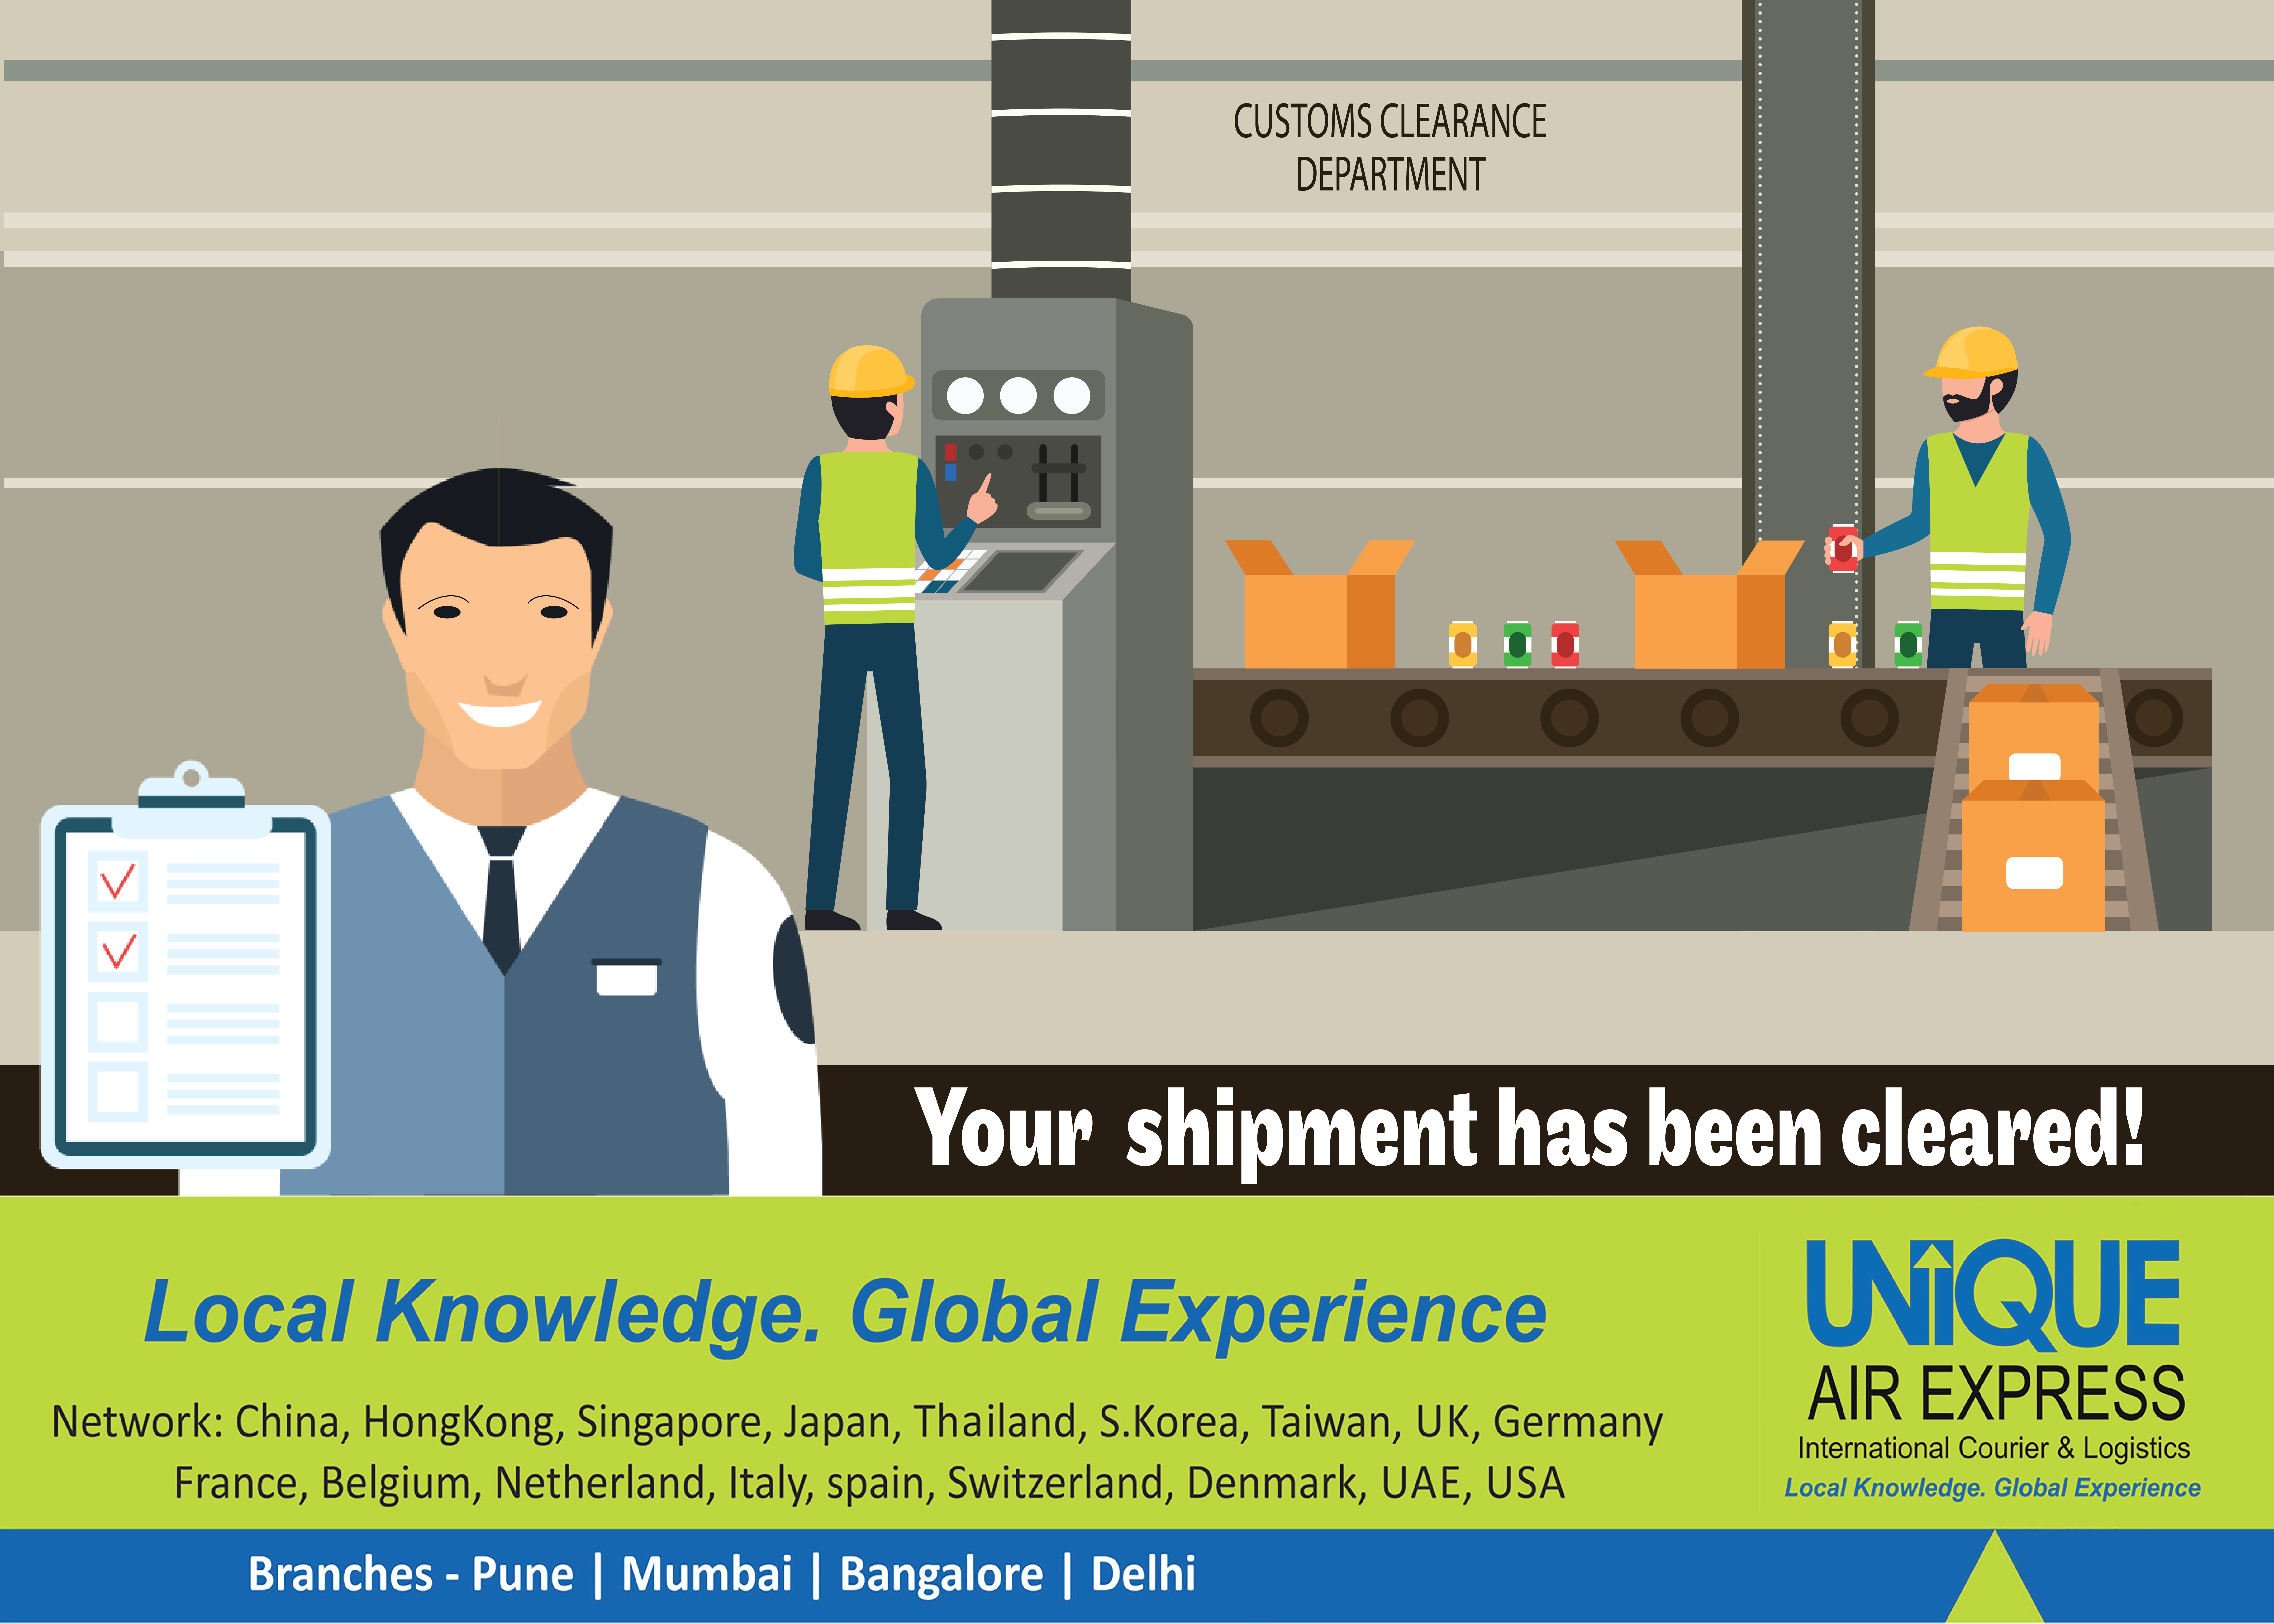 Facing problems for your shipments in custom clearance? We